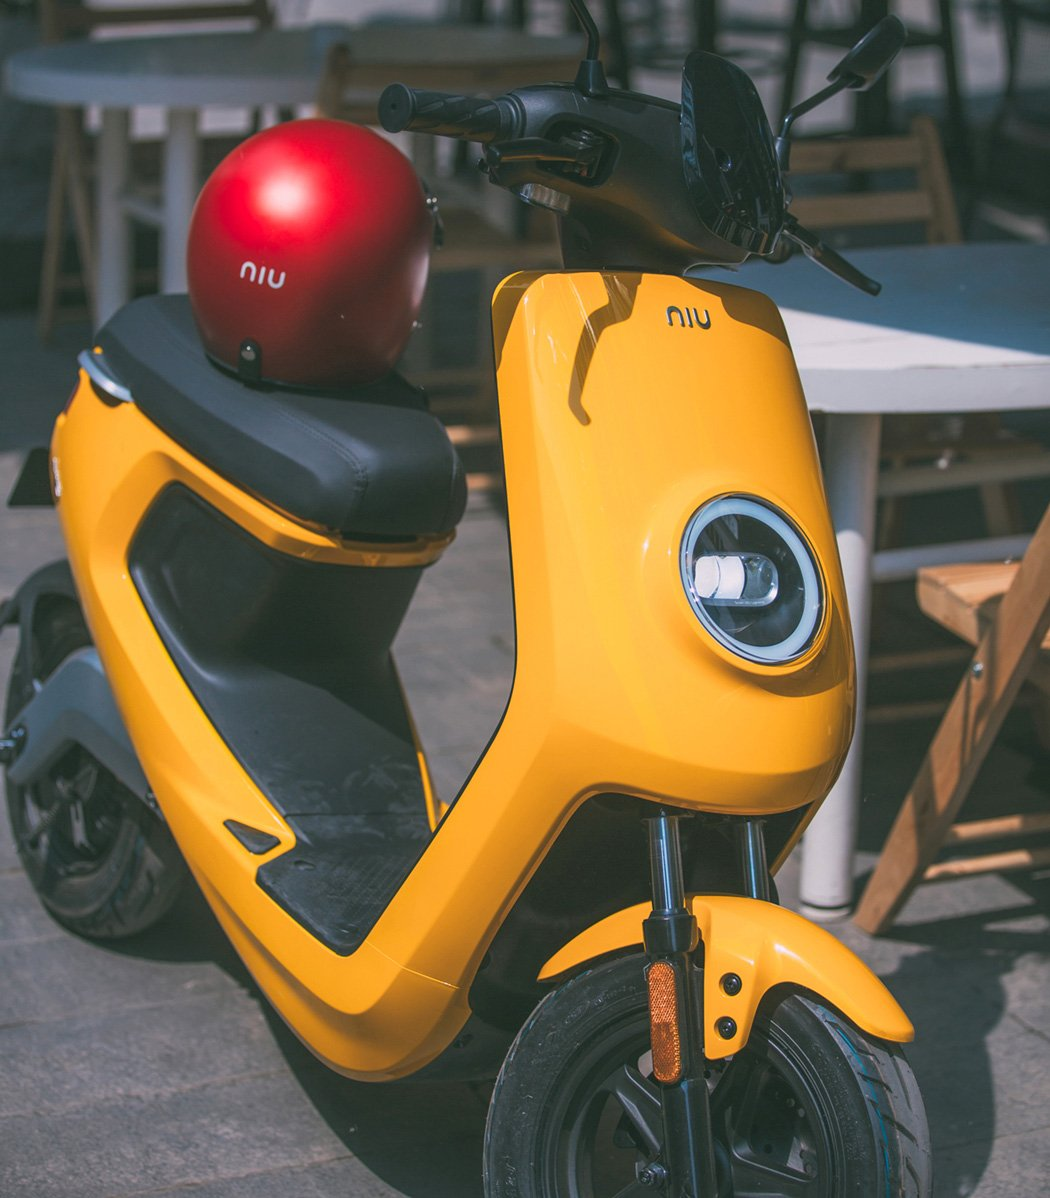 nui_m1_scooter_01